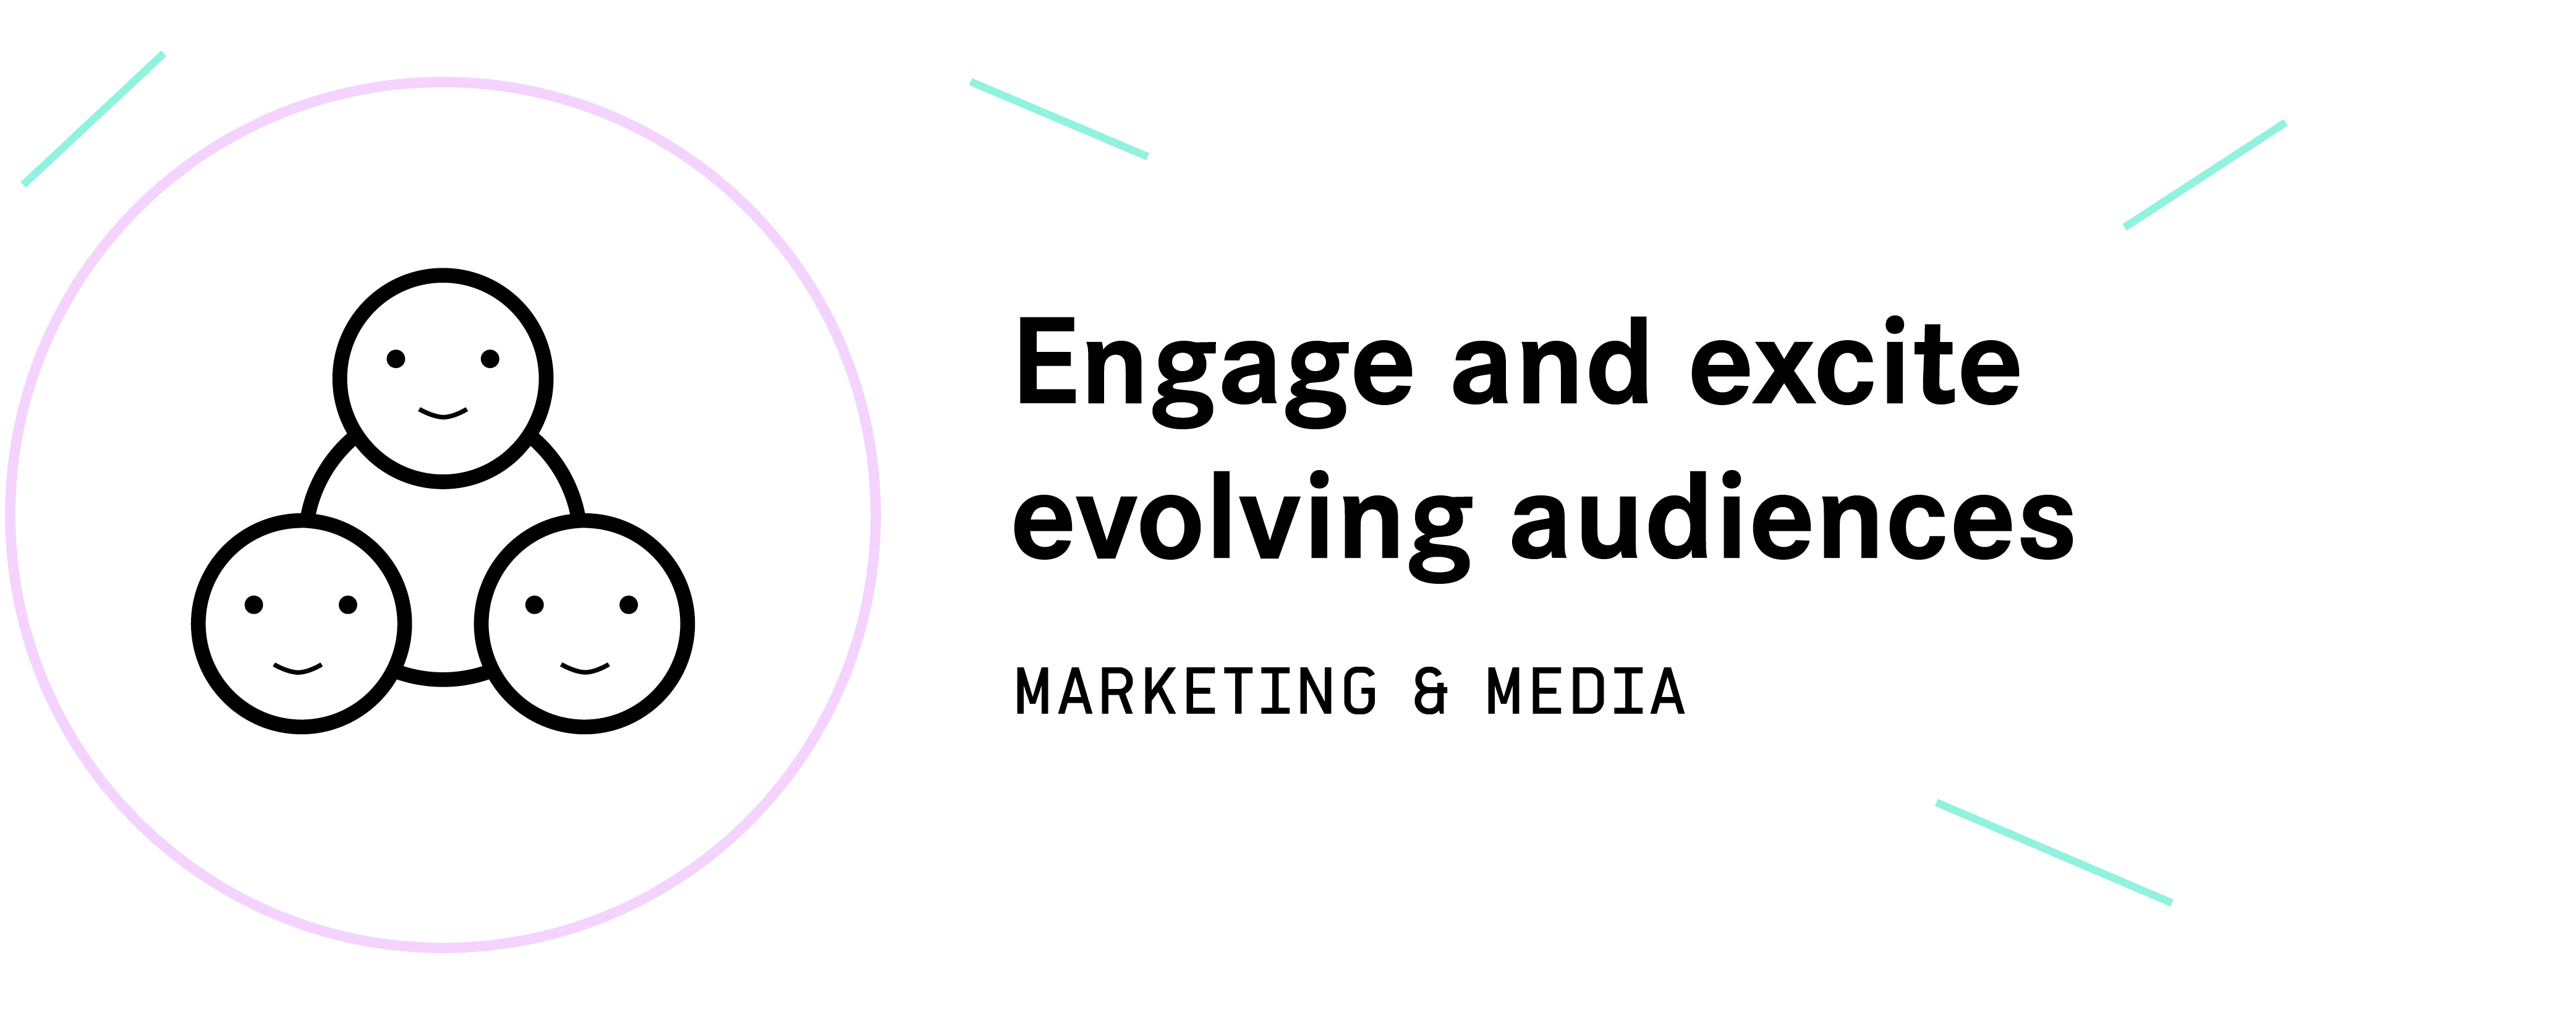 Engage and excite evolving audiences